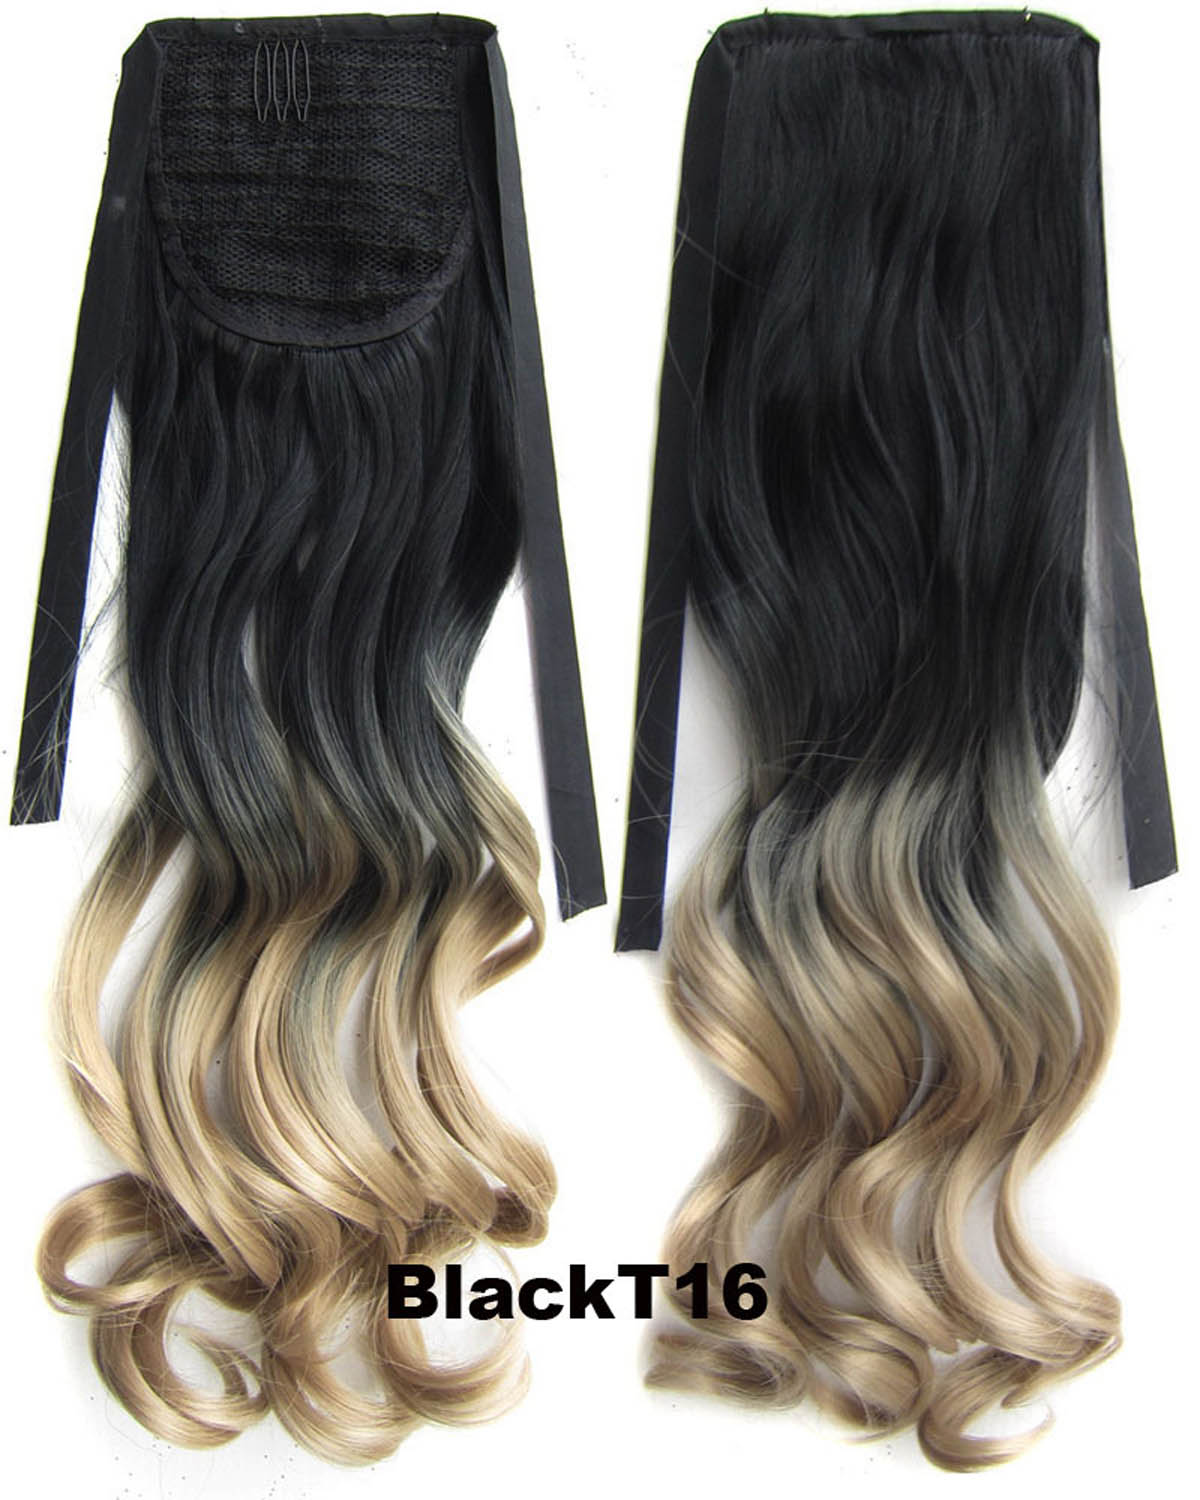 22 Inch Lady Fashionable Curly and Long Lace/Ribbon Synthetic Hair Ponytail Ombre BlackT16